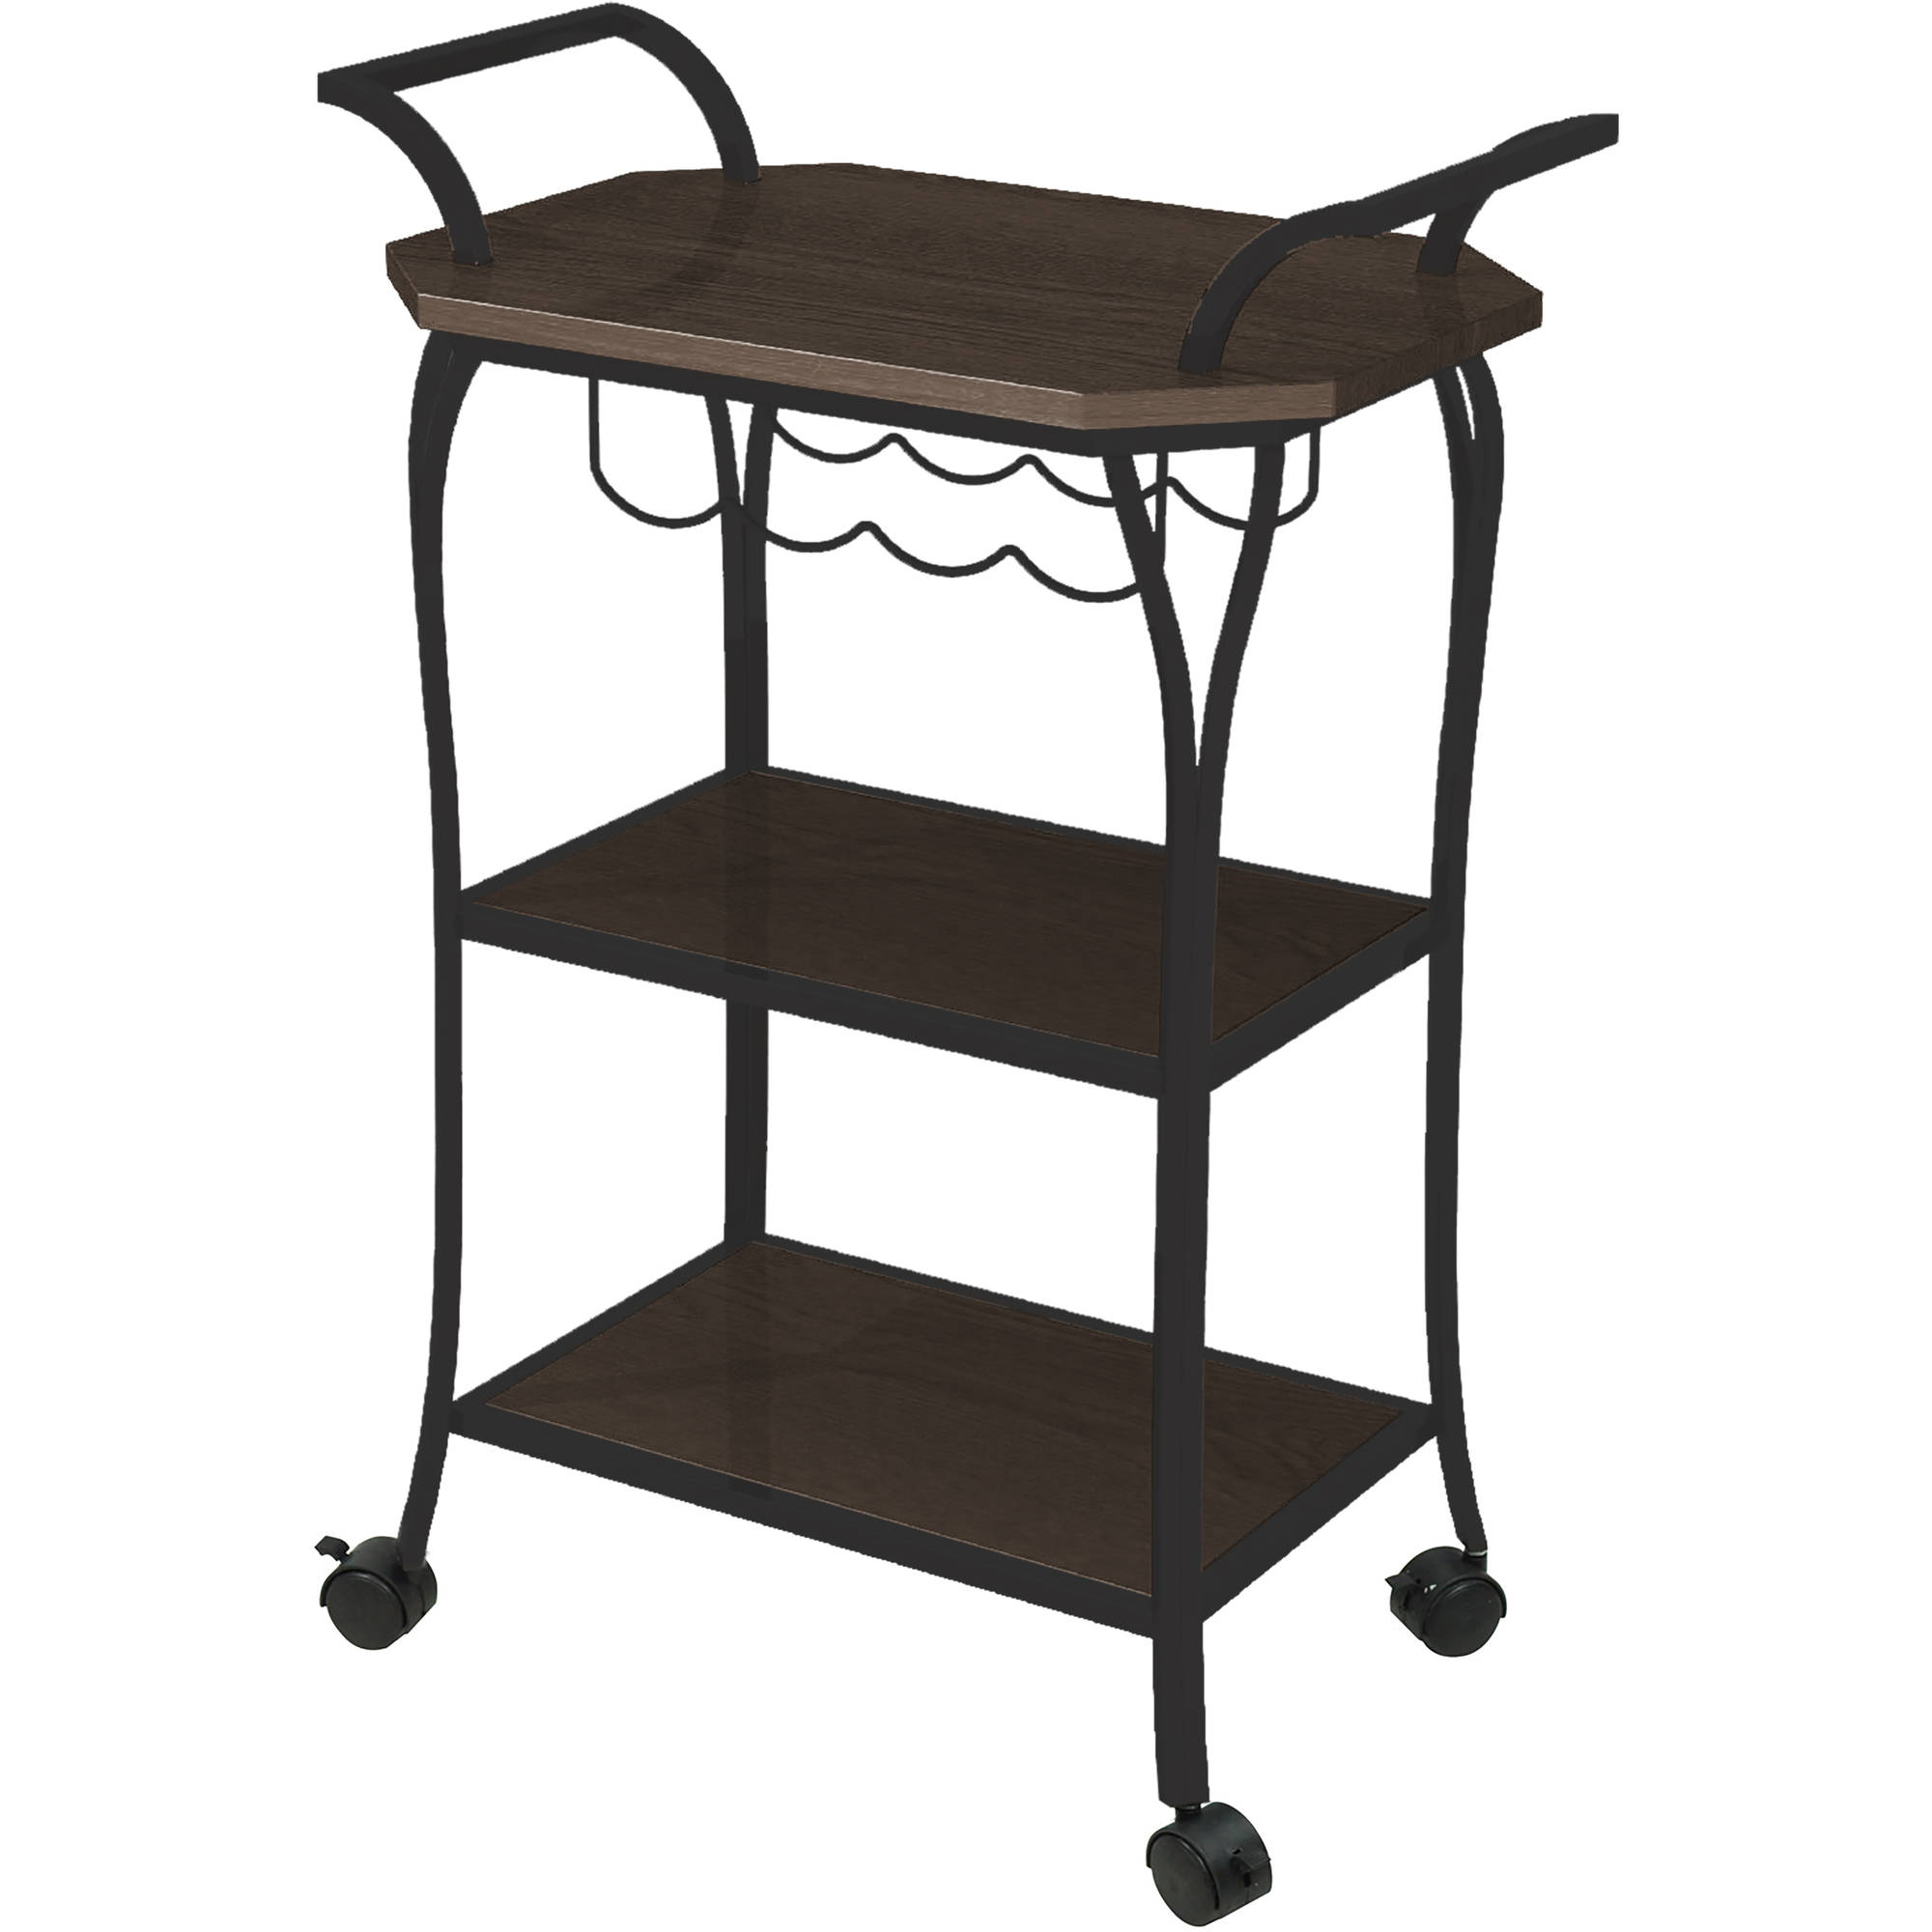 Better Homes and Gardens Mixed Material Kitchen Cart with Wine Rack